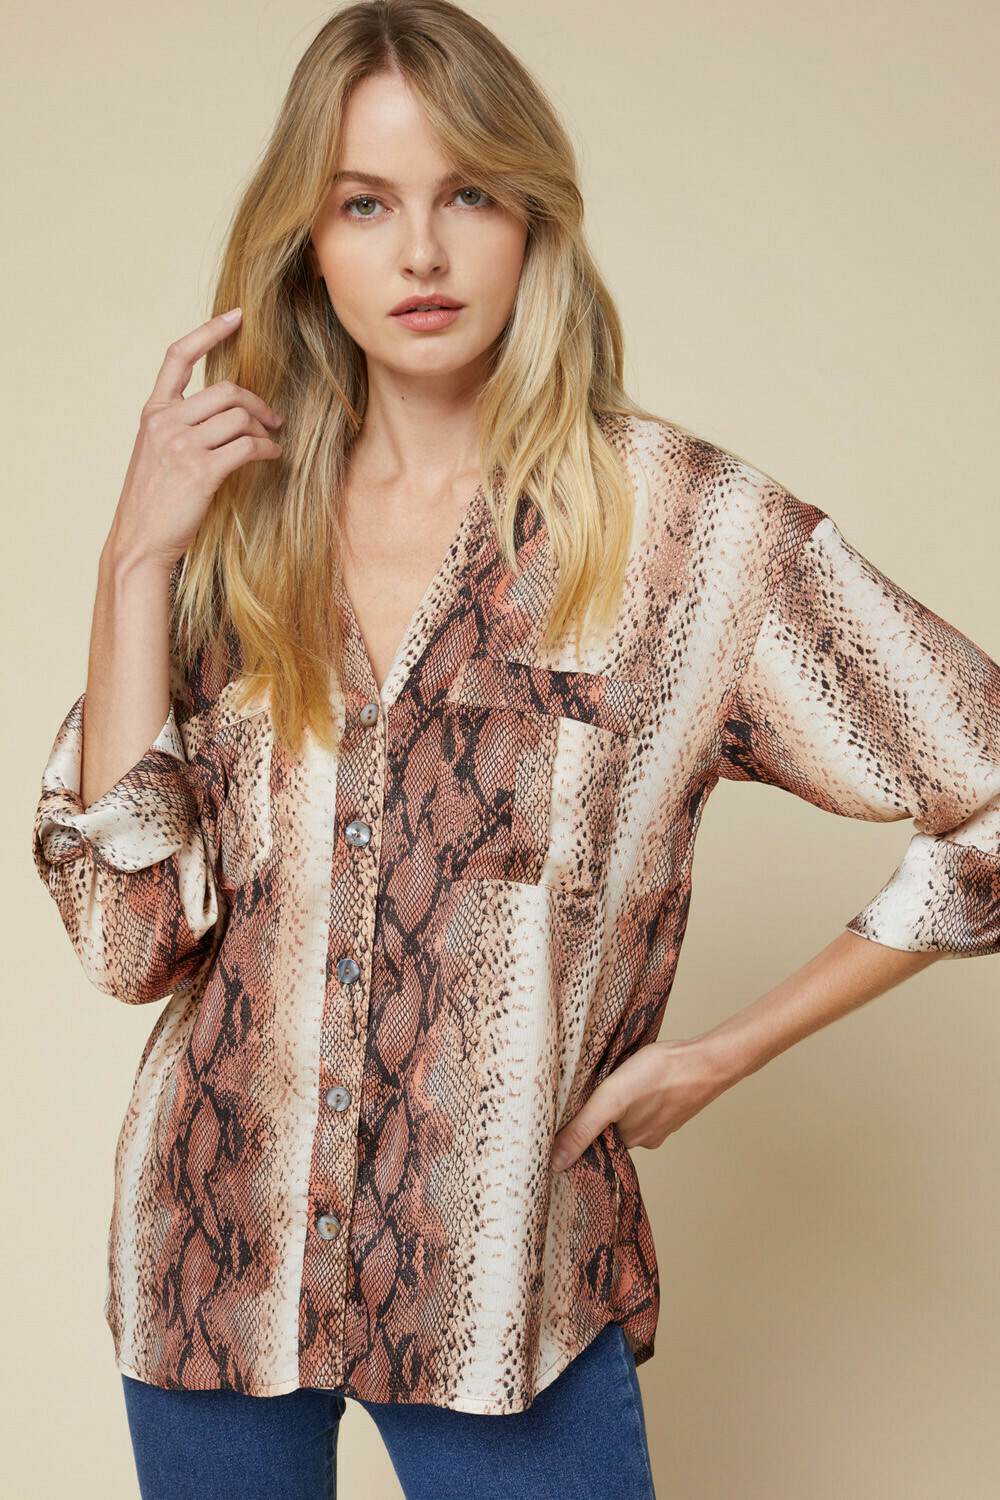 Natural Attraction Top